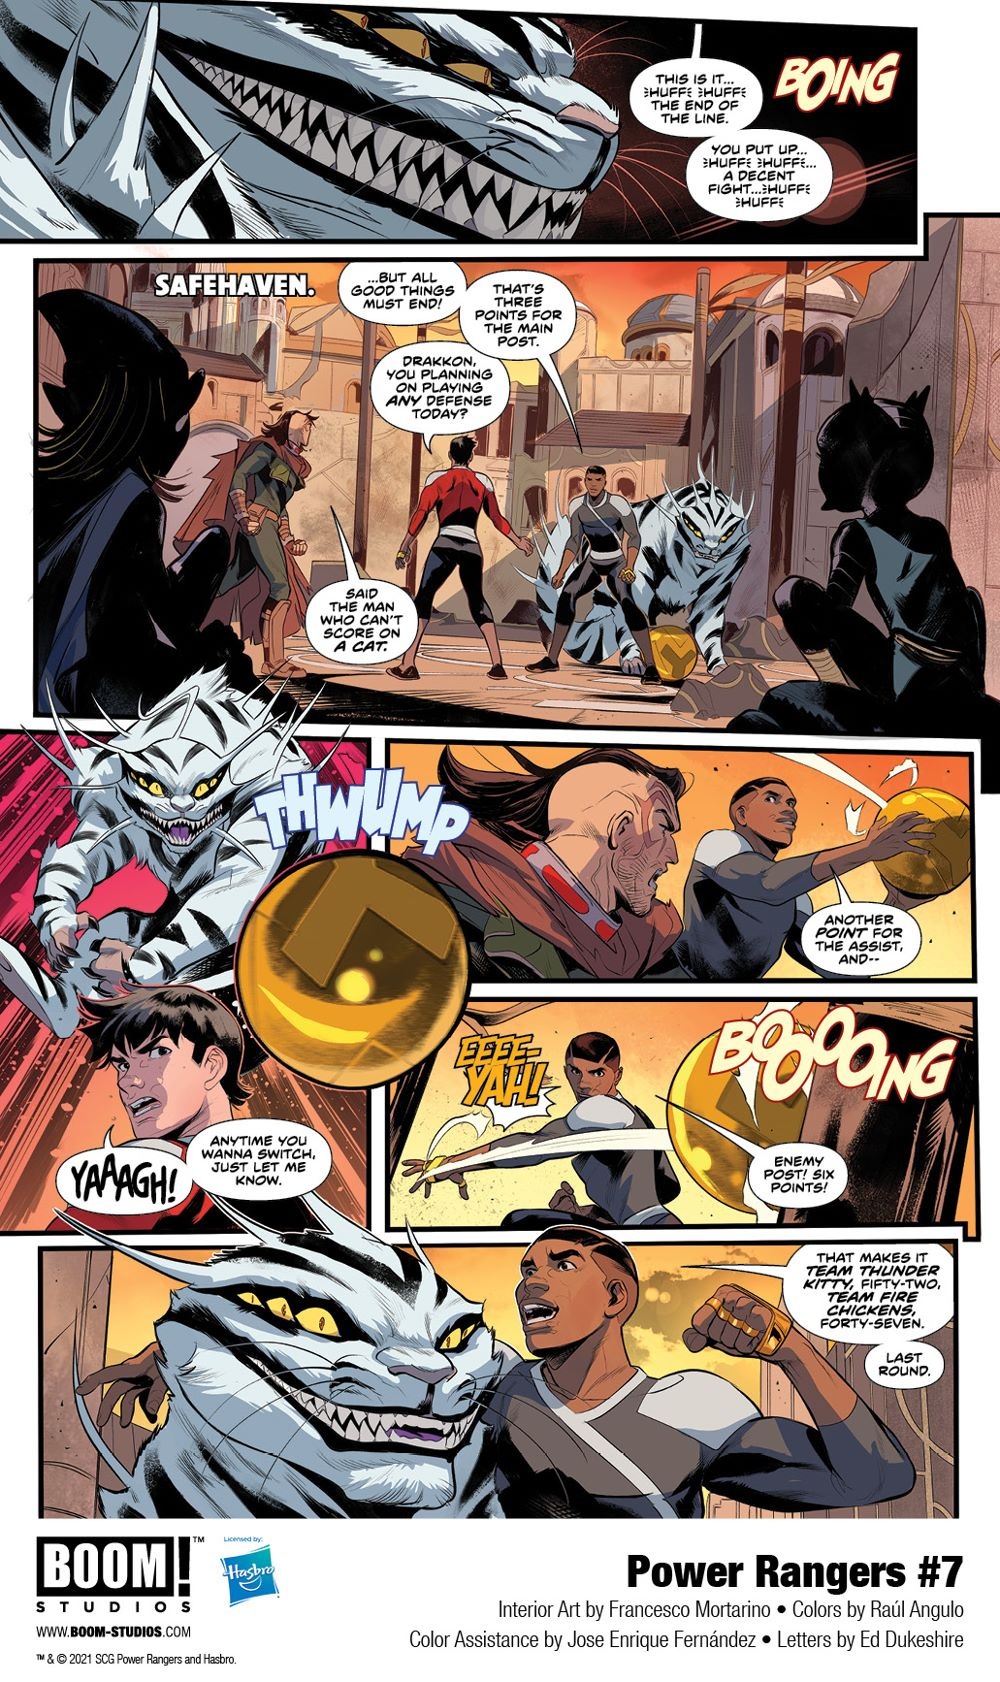 PowerRangers_007_Interiors_001_PROMO First Look at POWER RANGERS #7 by BOOM! Studios